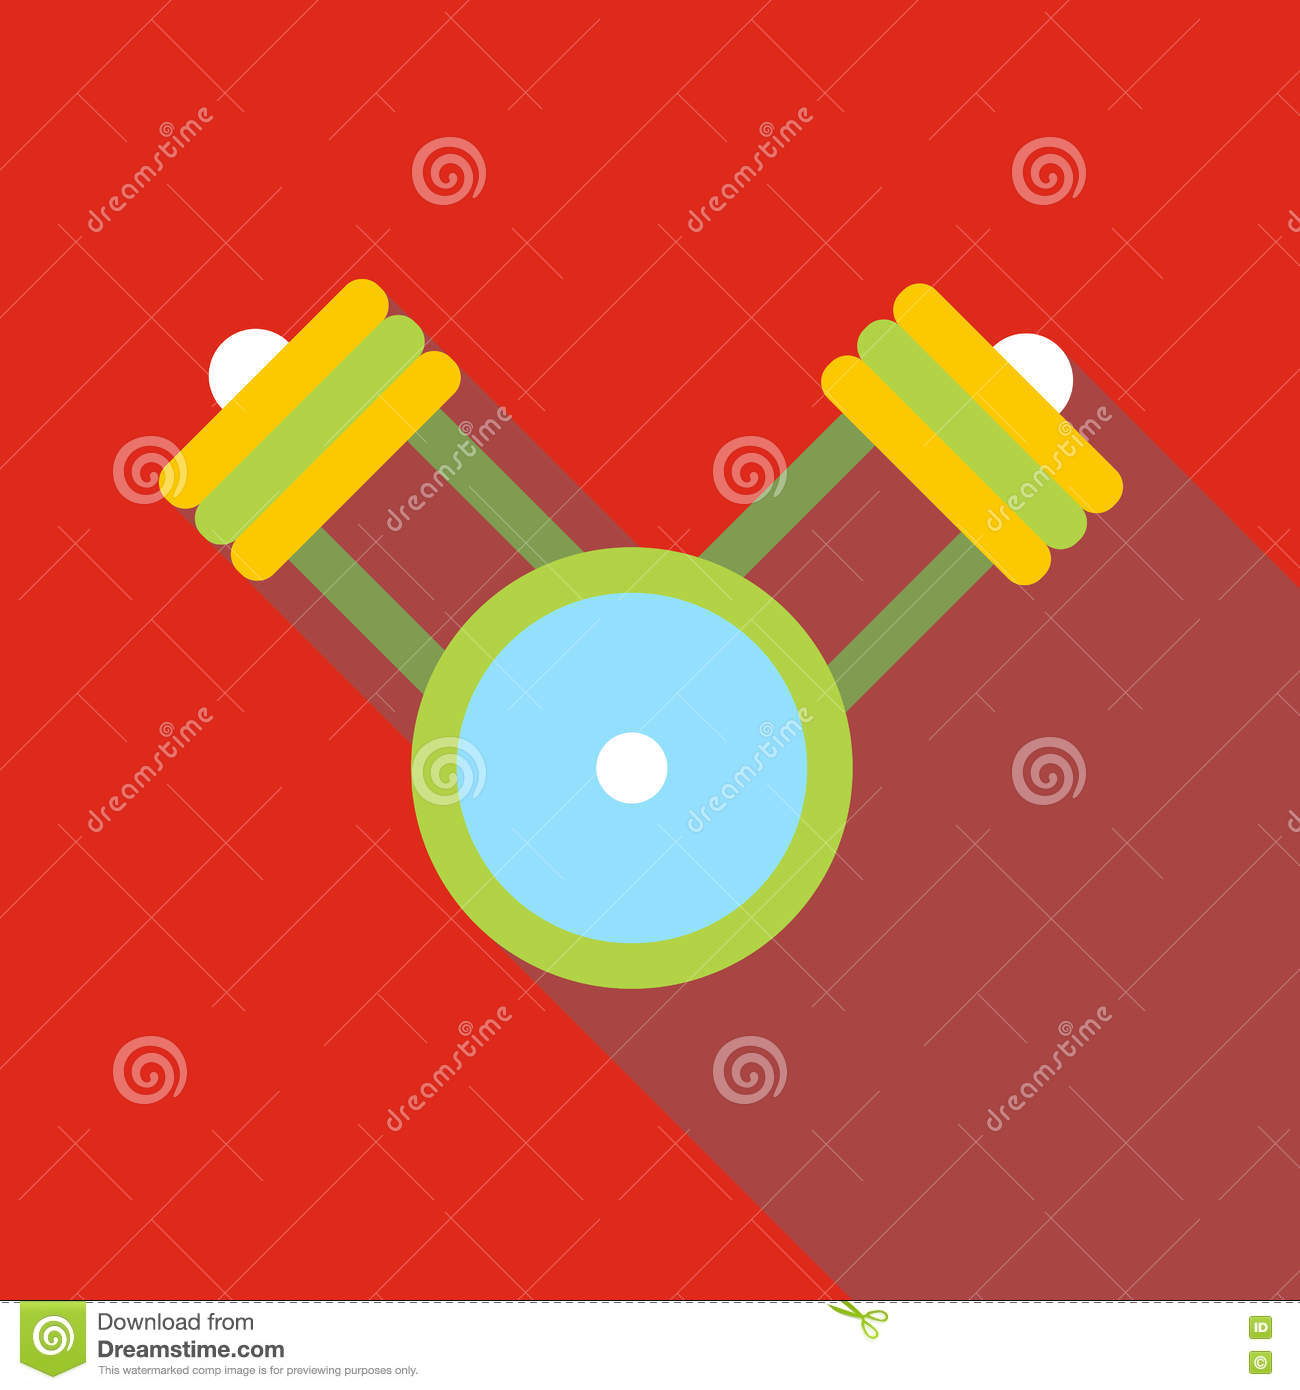 Engine Pistons On A Crankshaft Icon Flat Style Stock Vector Diagram Schedule